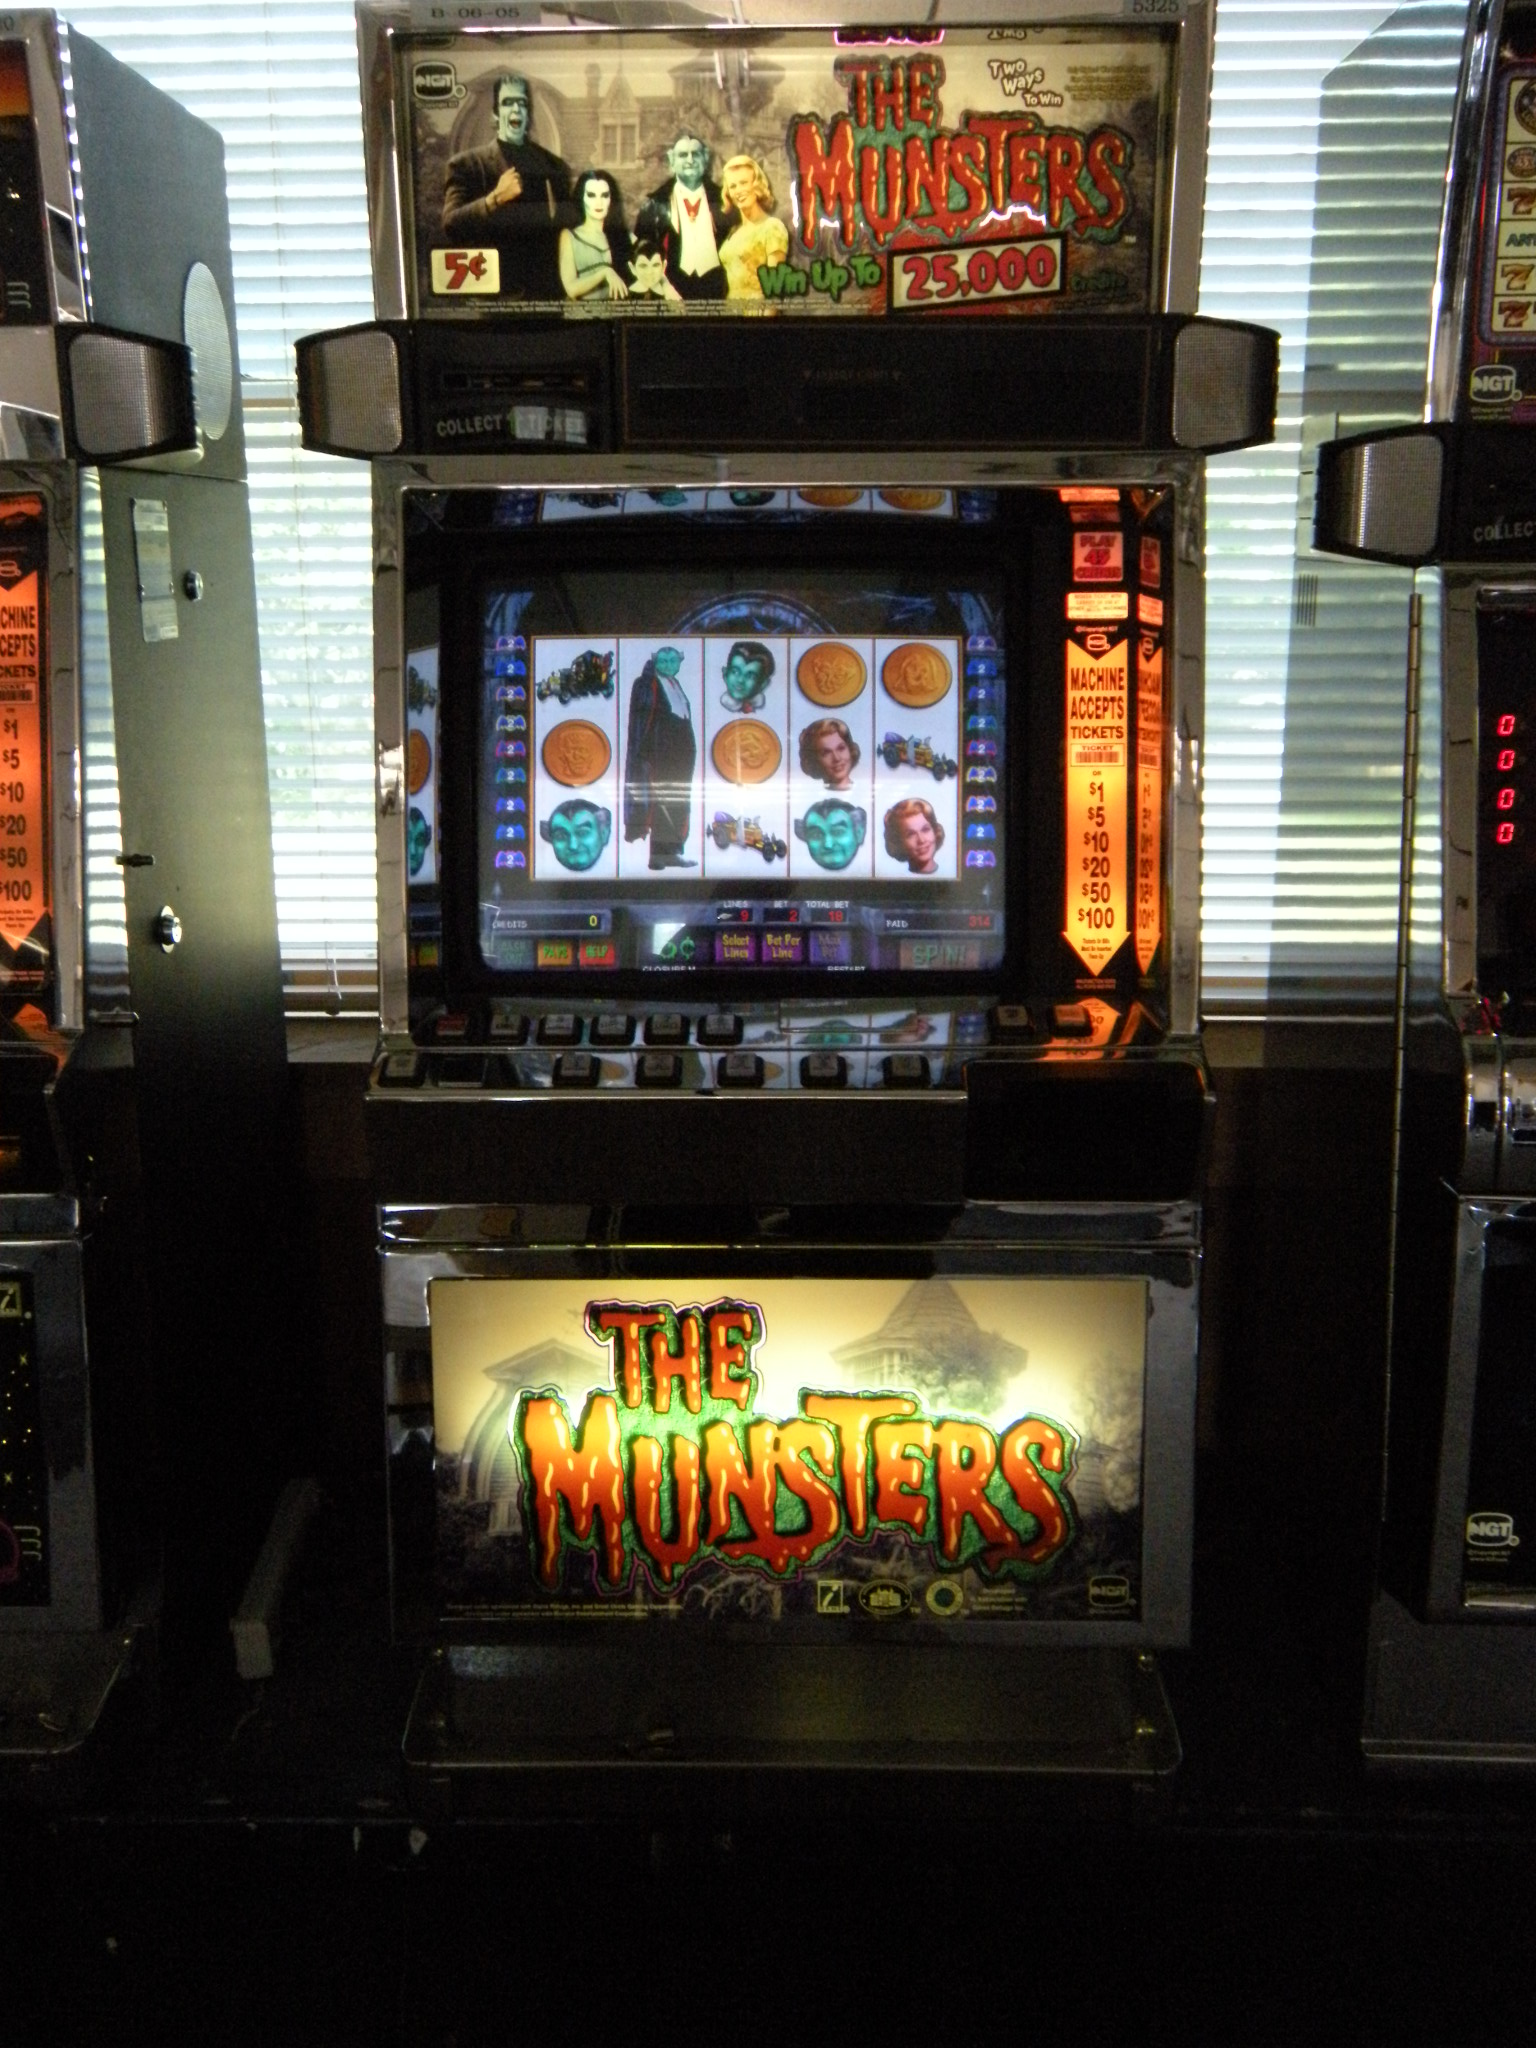 The Munsters Slot Machine Download